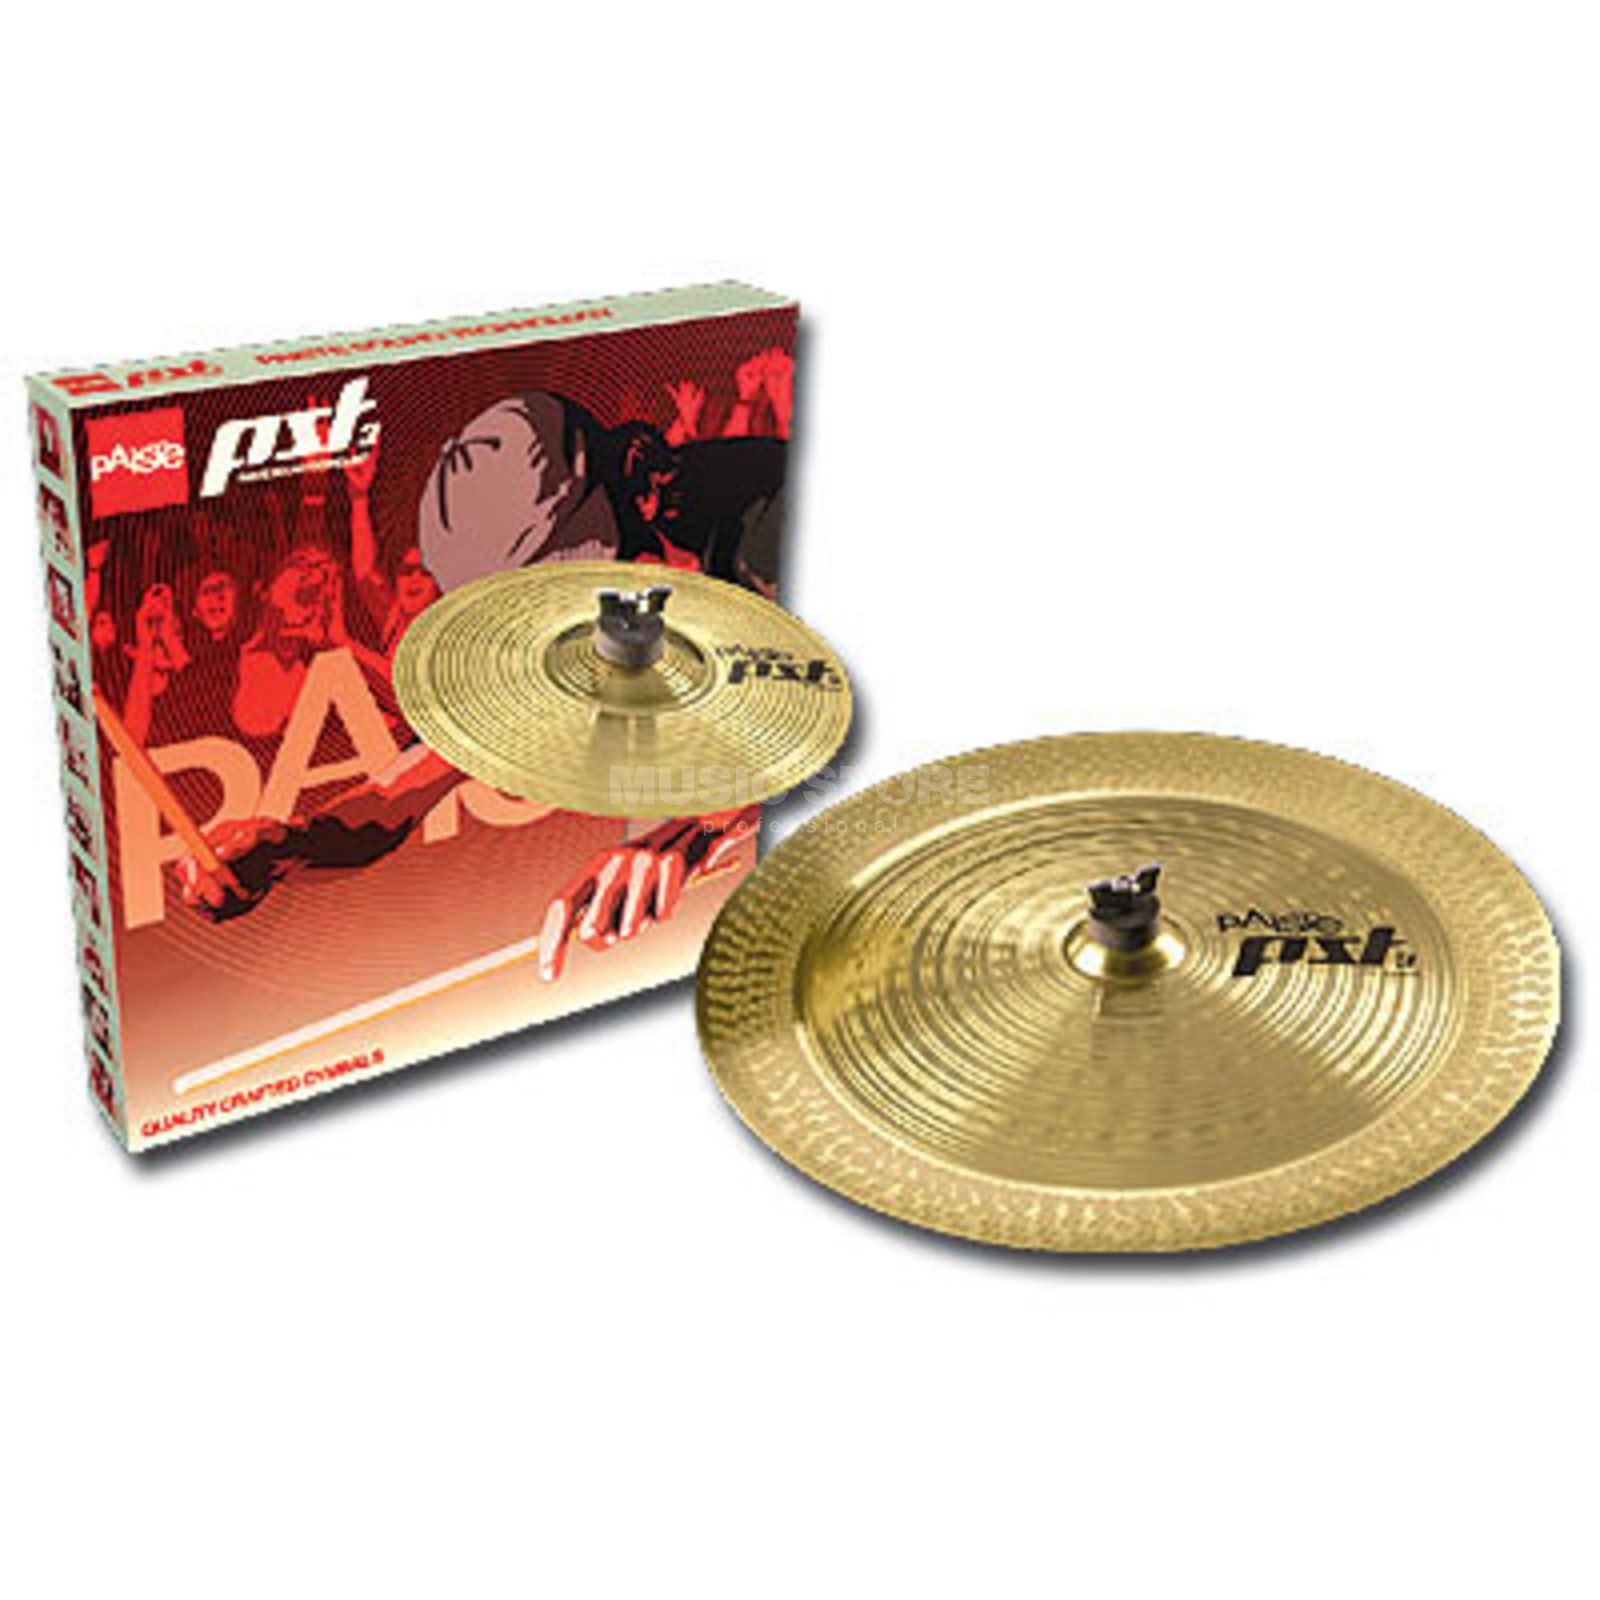 "Paiste PST3 Cymbal Set ""Effects"" 10"" Splash, 18"" China Produktbillede"